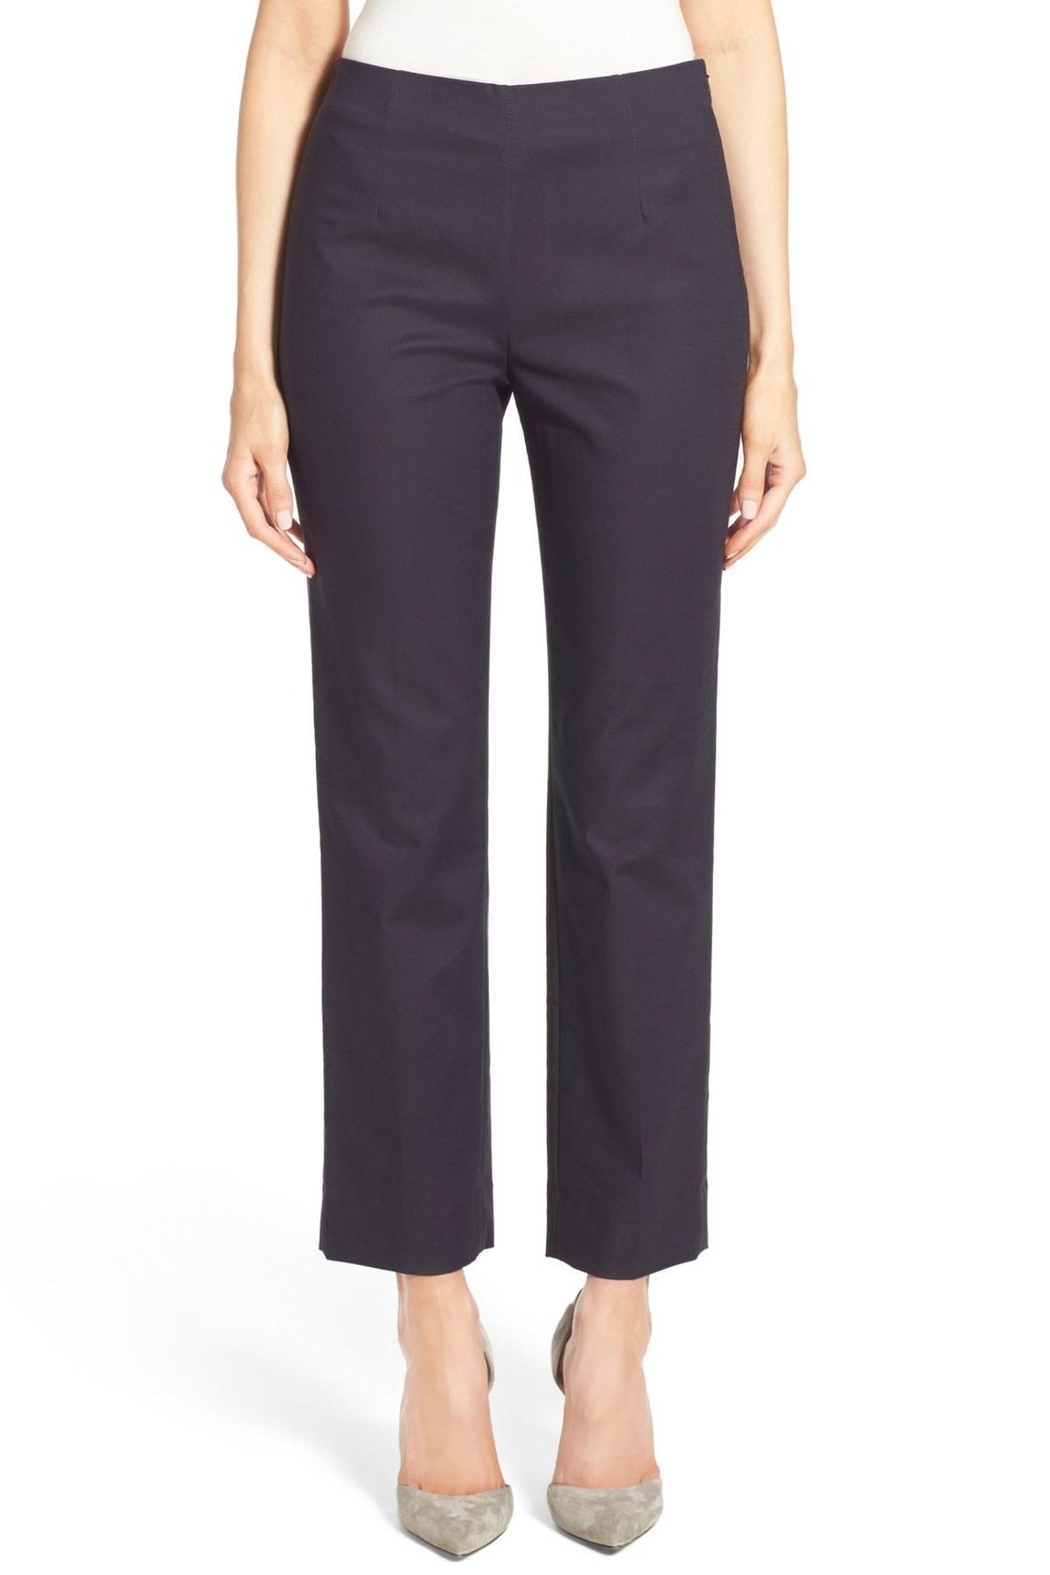 Nic + Zoe Side Zip Pant - Front Cropped Image